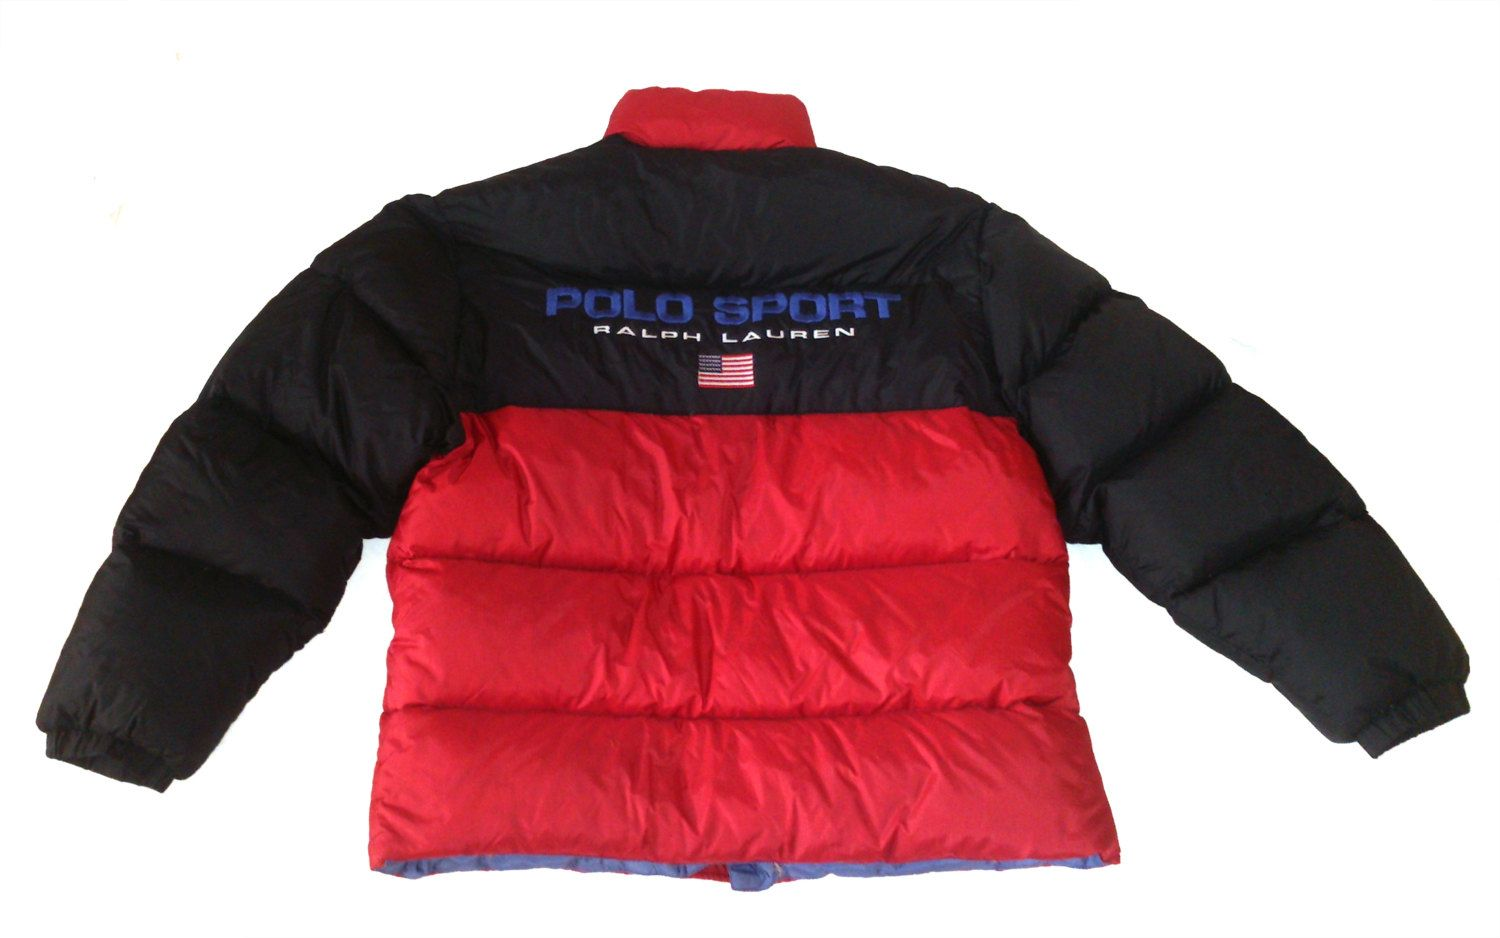 Vintage 90 Polo Sport By Ralph Lauren Goose Down Puffer Jacket Big Logo Spell Out Black Red Size S M Puffer Black And Red Ralph Lauren [ 938 x 1500 Pixel ]